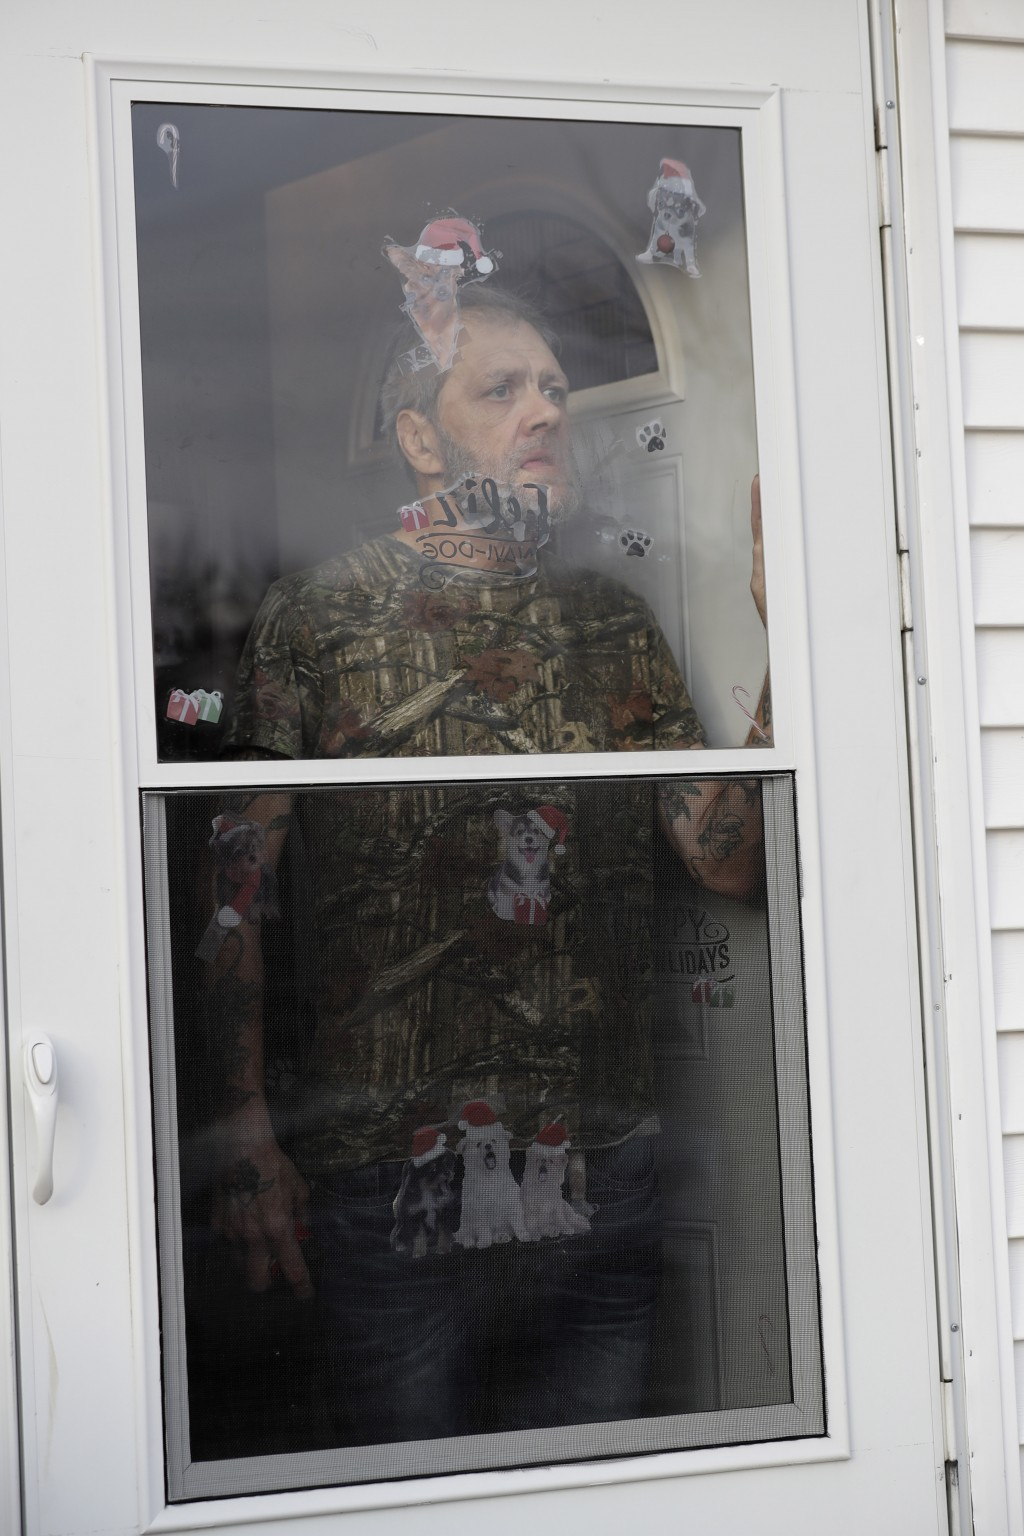 In this Friday, Dec. 20, 2019 photo, Bobby Goldberg looks outside from his home in suburban Chicago. Goldberg has filed a lawsuit claiming he was abus...